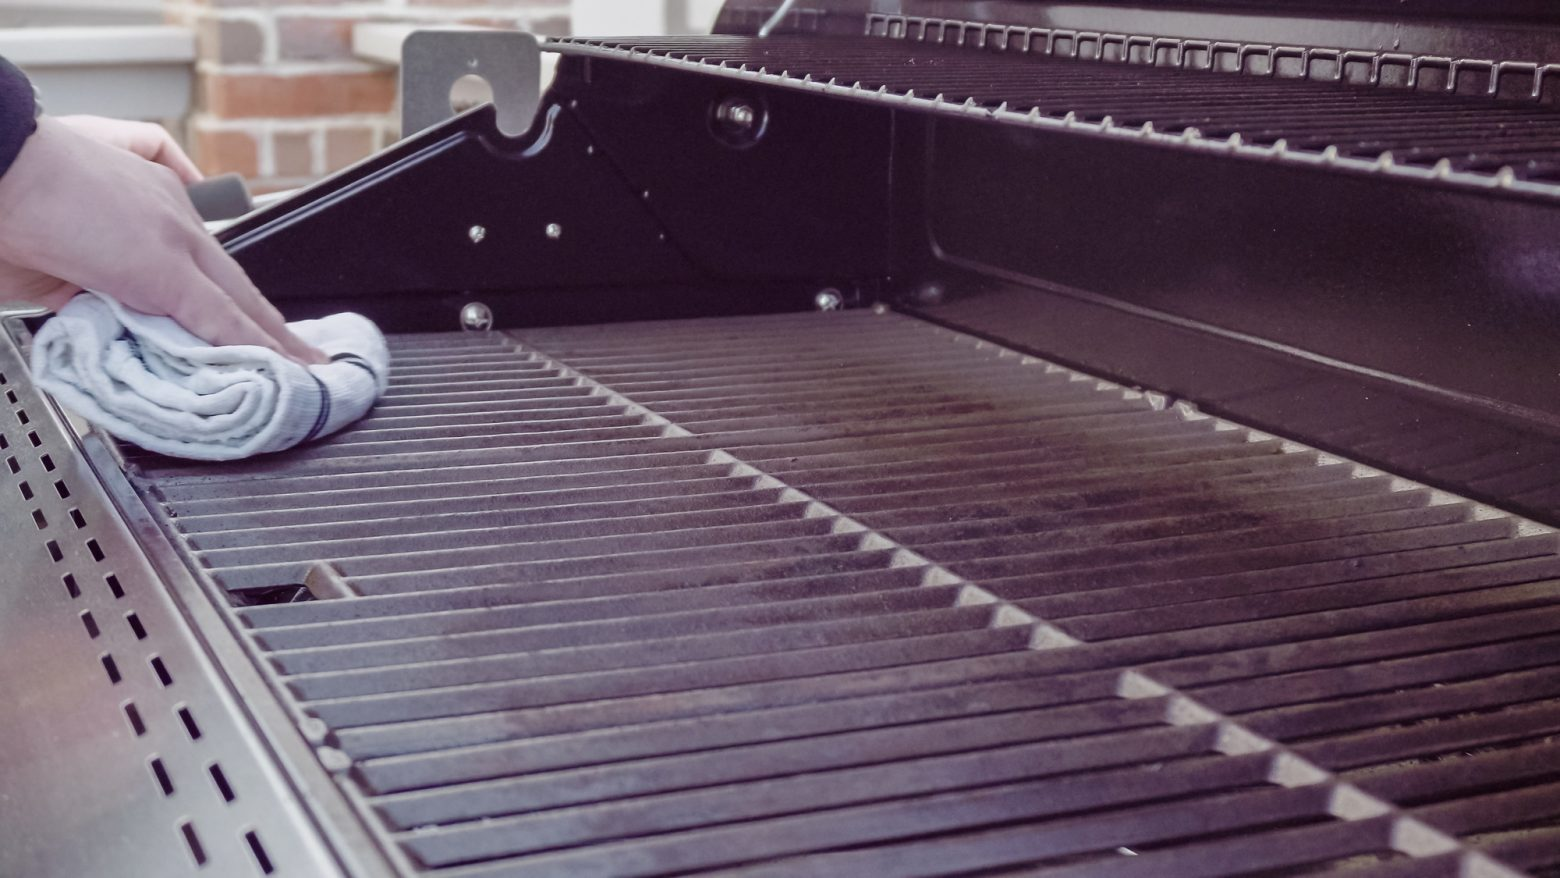 cleaning the grill with a soft cloth